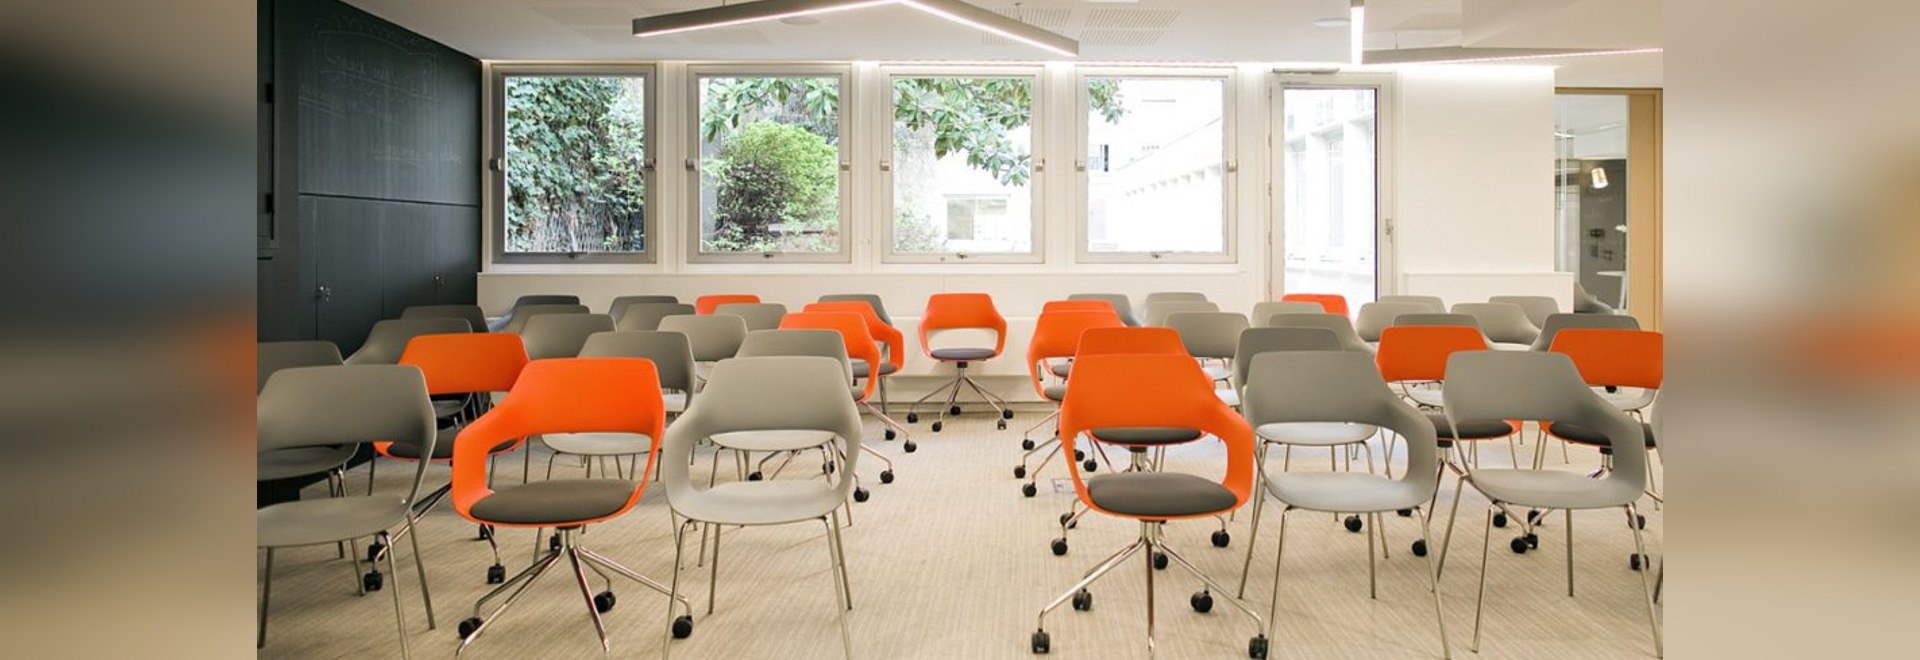 Home office 2.0: Bureaulib in Paris relies on Occo and Timetable